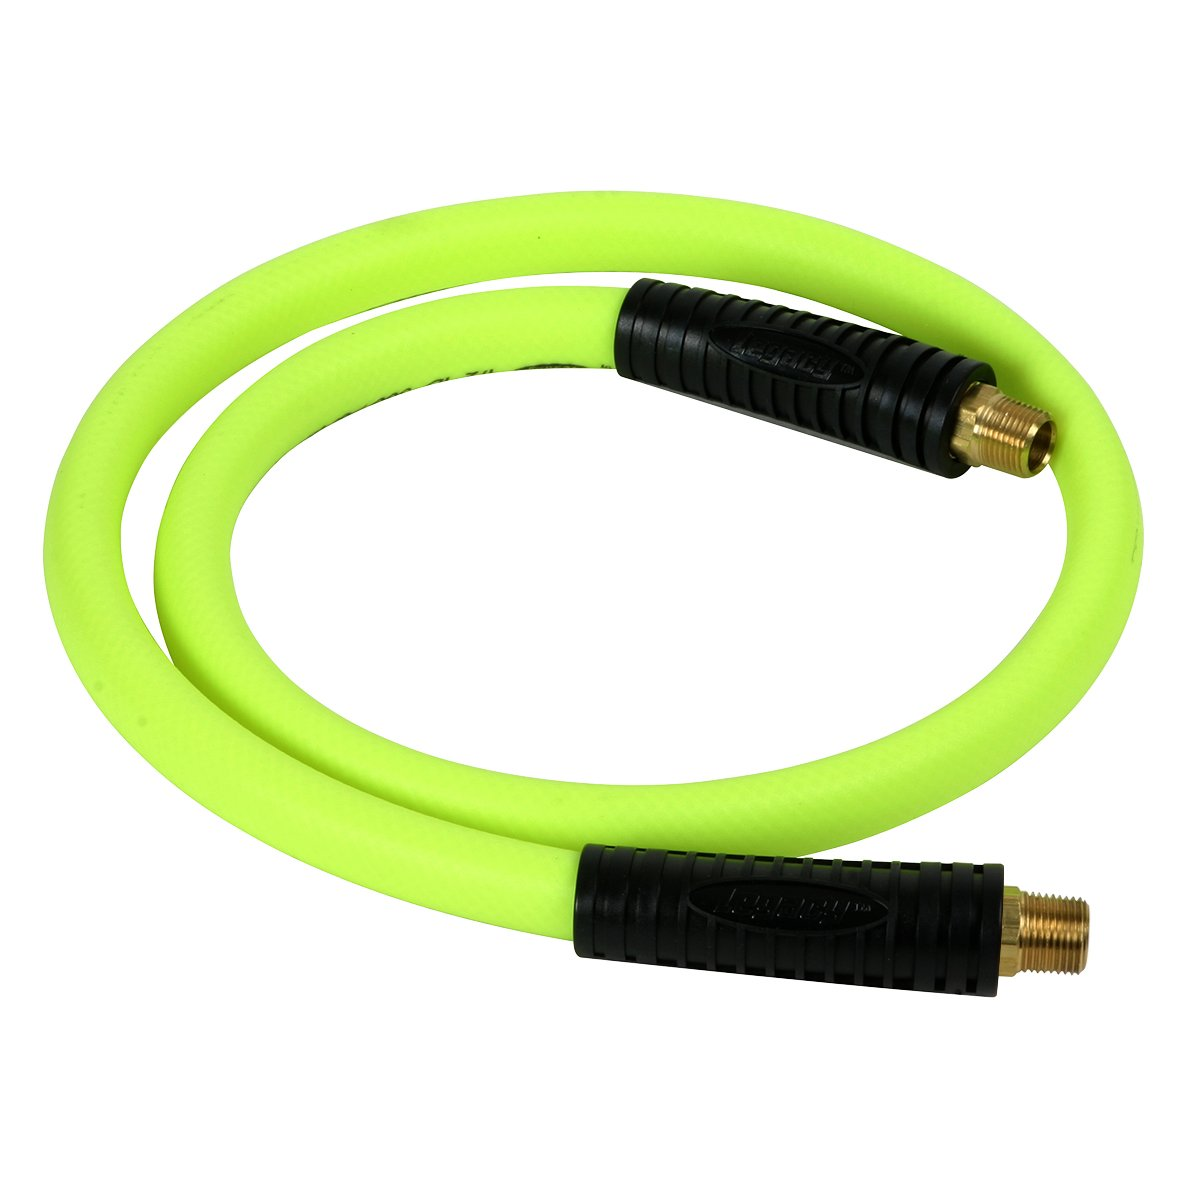 Flexzilla Swivel Whip Air Hose, 1/2 in. x 4 ft. (3/8 in. MNPT Swivel x 3/8 in. MNPT Ends), Heavy Duty, Lightweight, Hybrid, ZillaGreen - HFZ1204YW3S